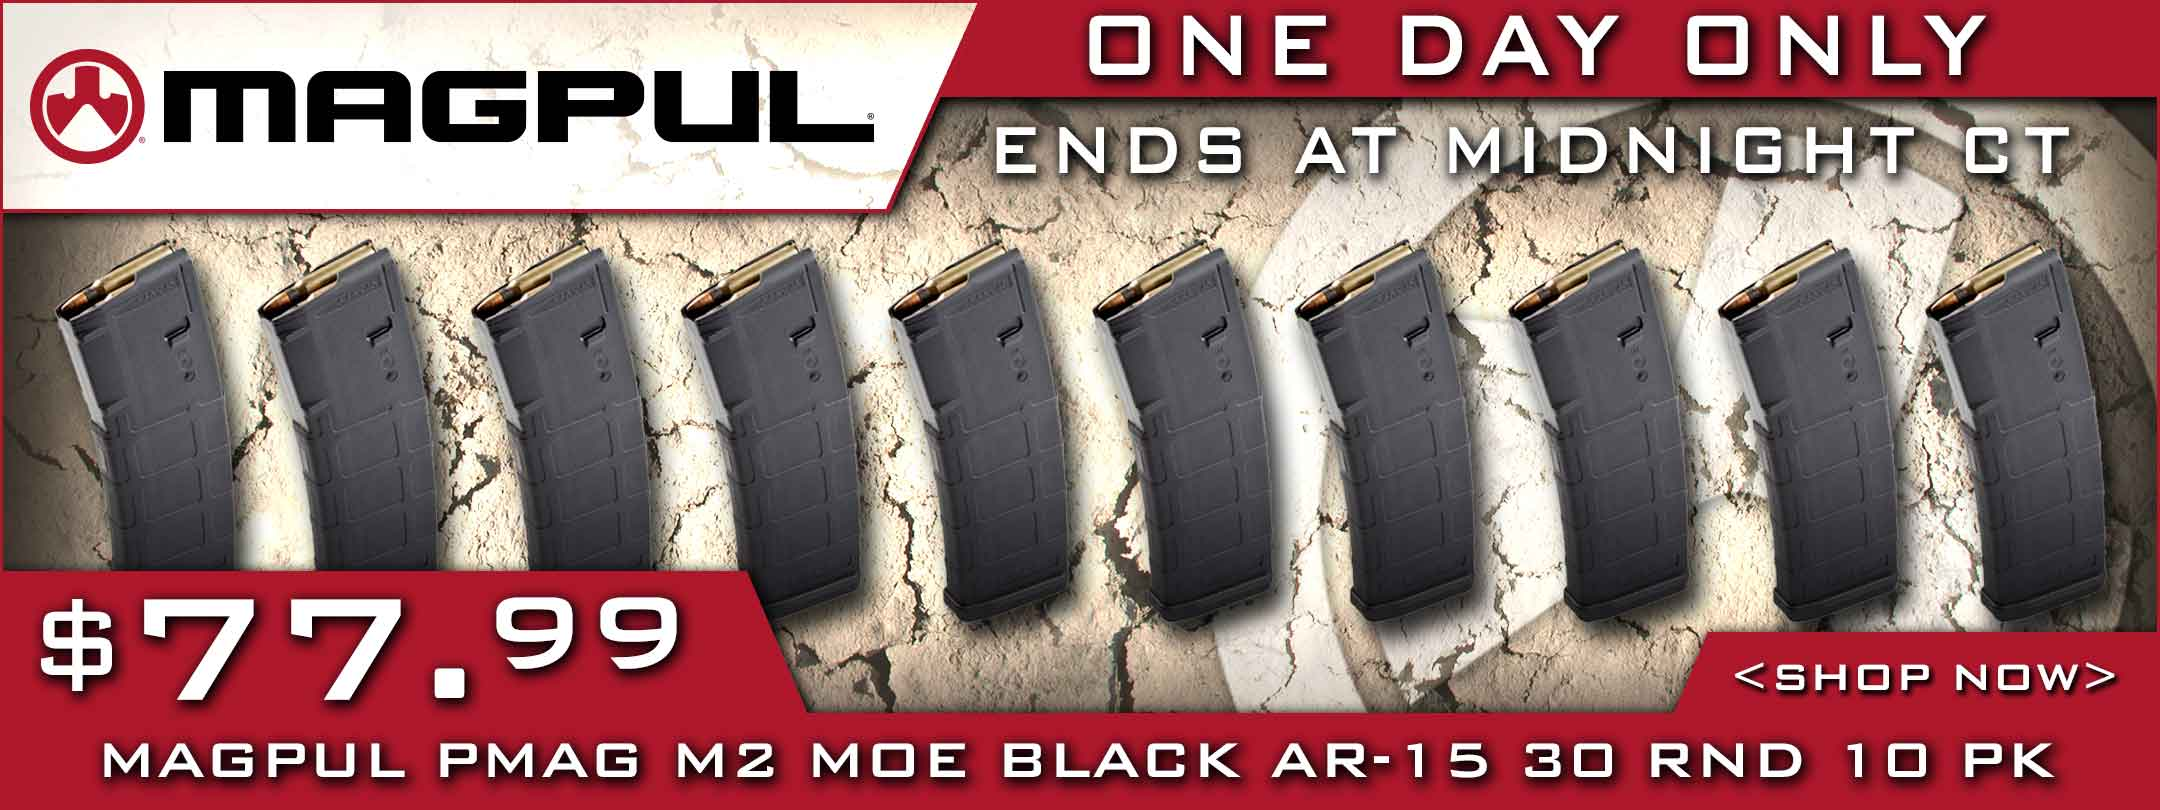 Save on Magpul 10 Pack